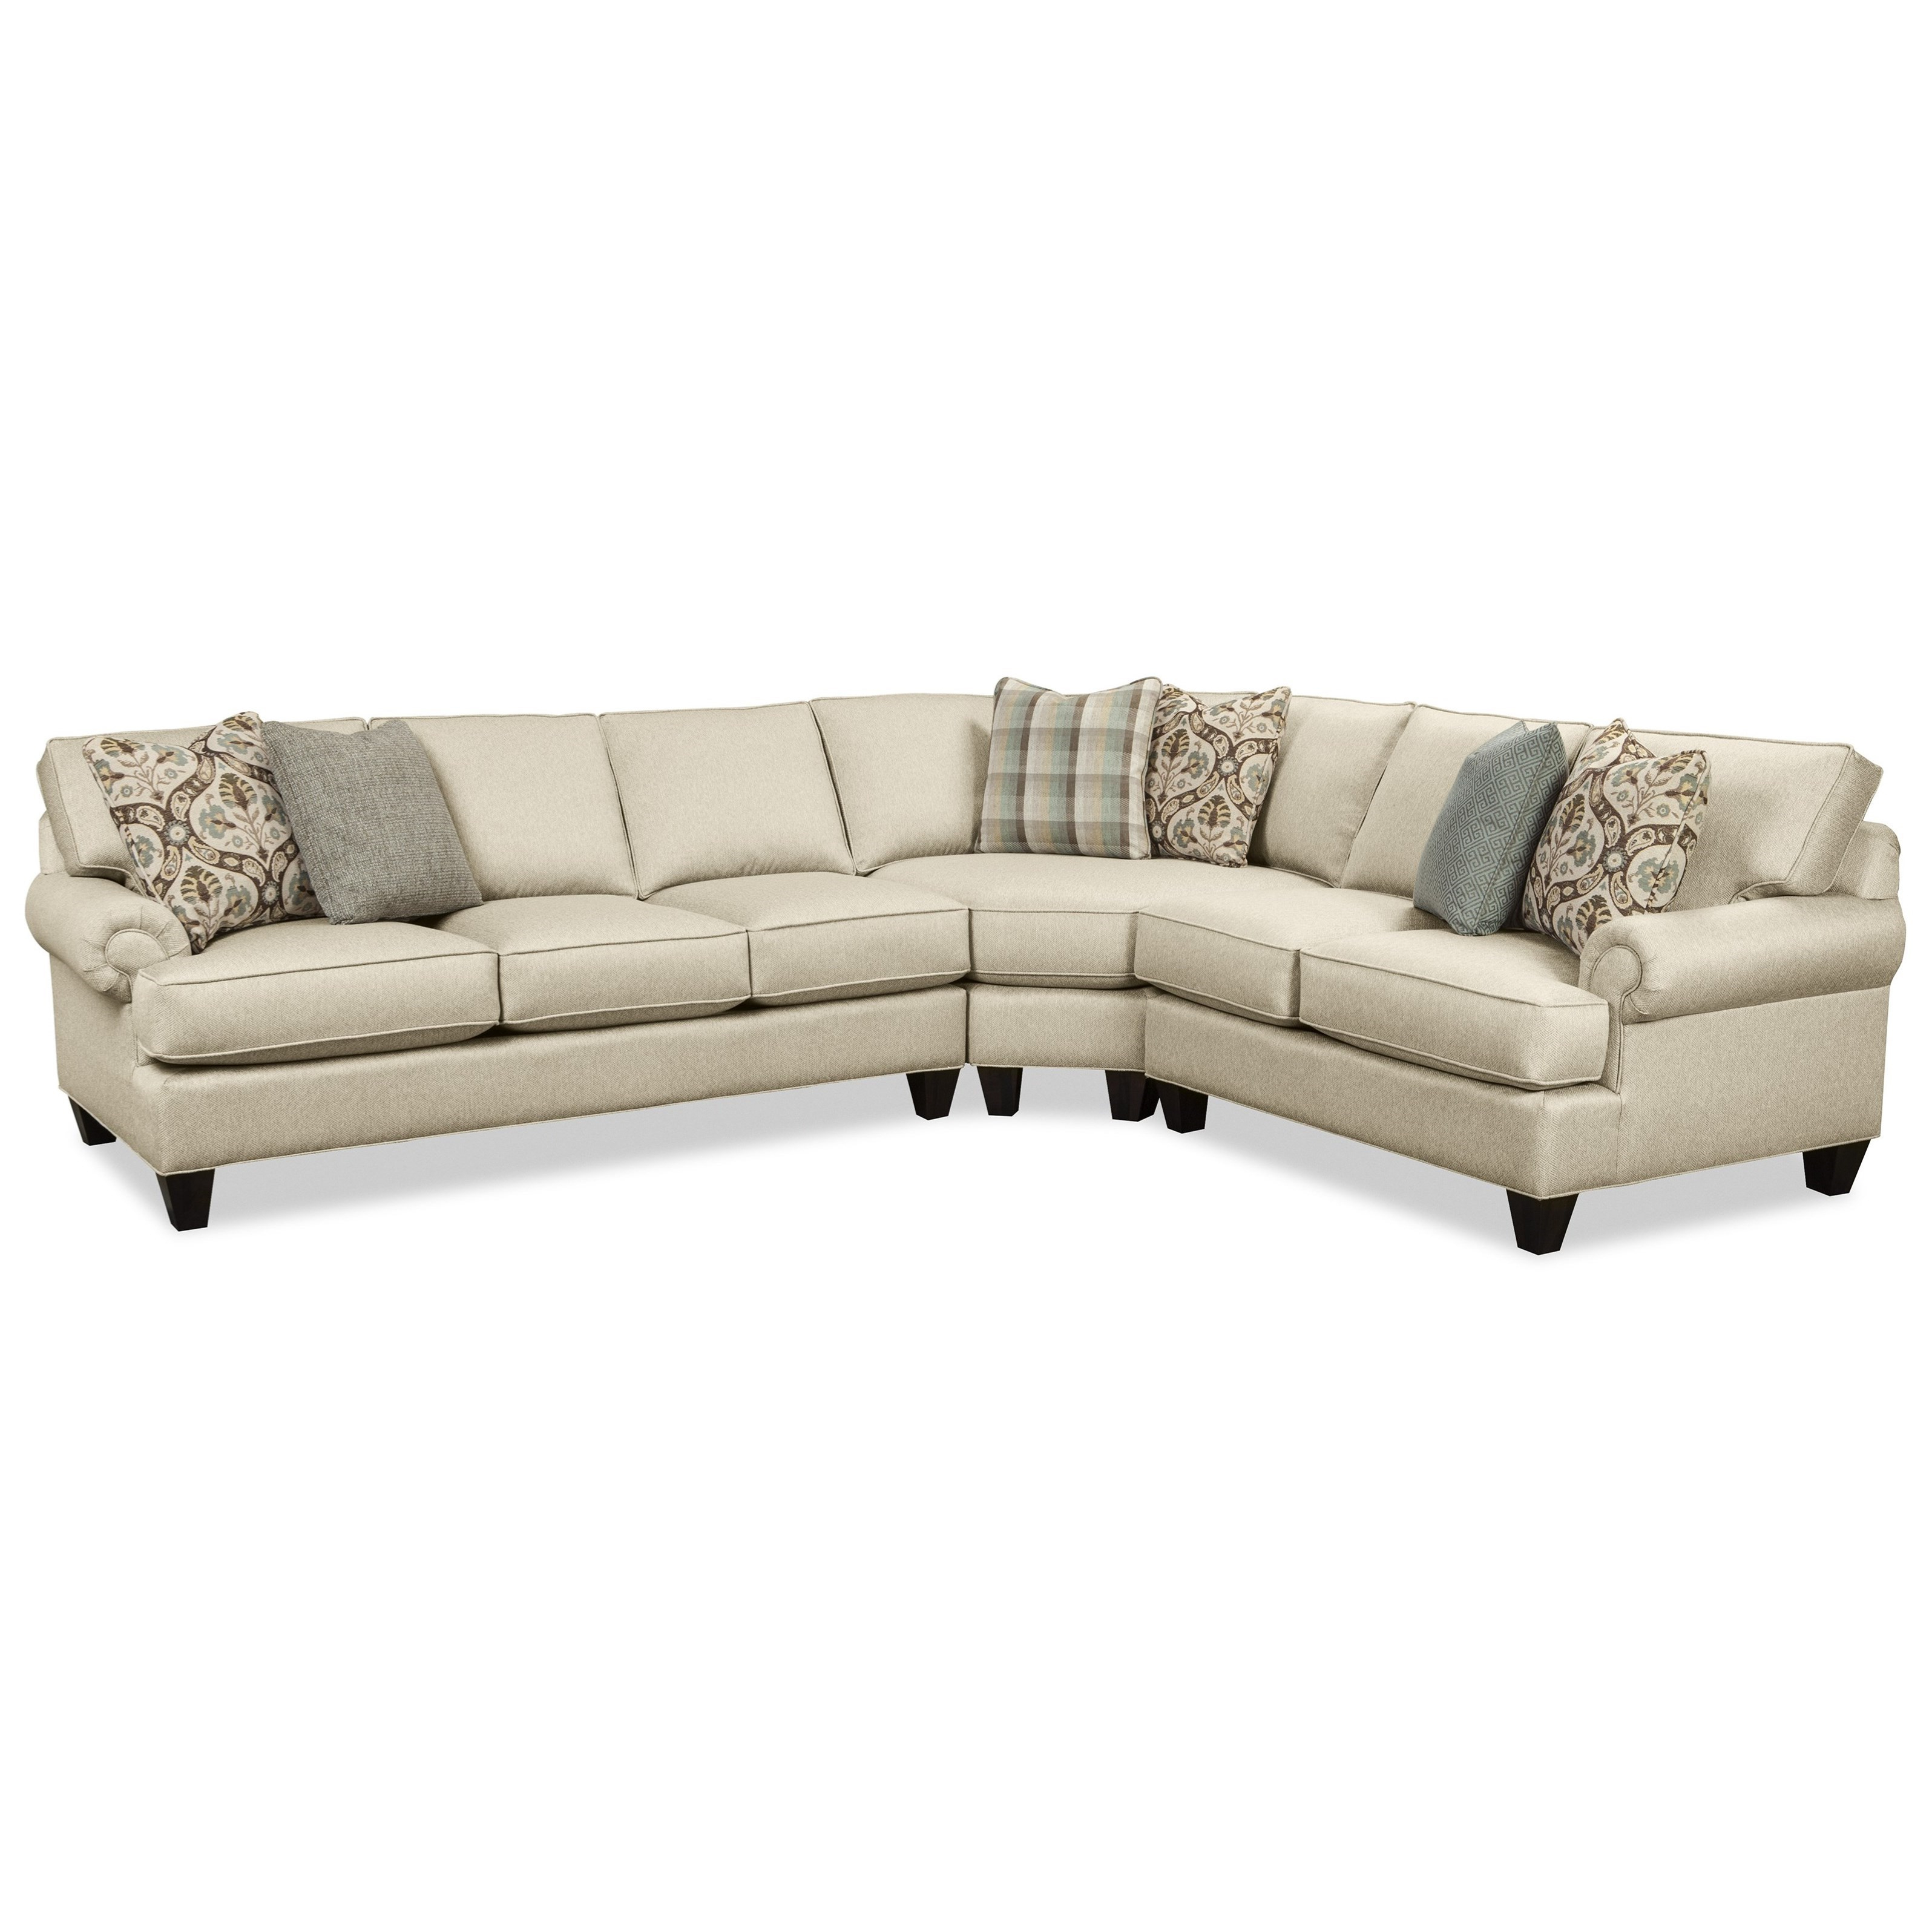 Craftmaster C9 Custom Collection Customizable Three Piece Sectional With Regard To Latest Tatum Dark Grey 2 Piece Sectionals With Raf Chaise (Gallery 16 of 20)